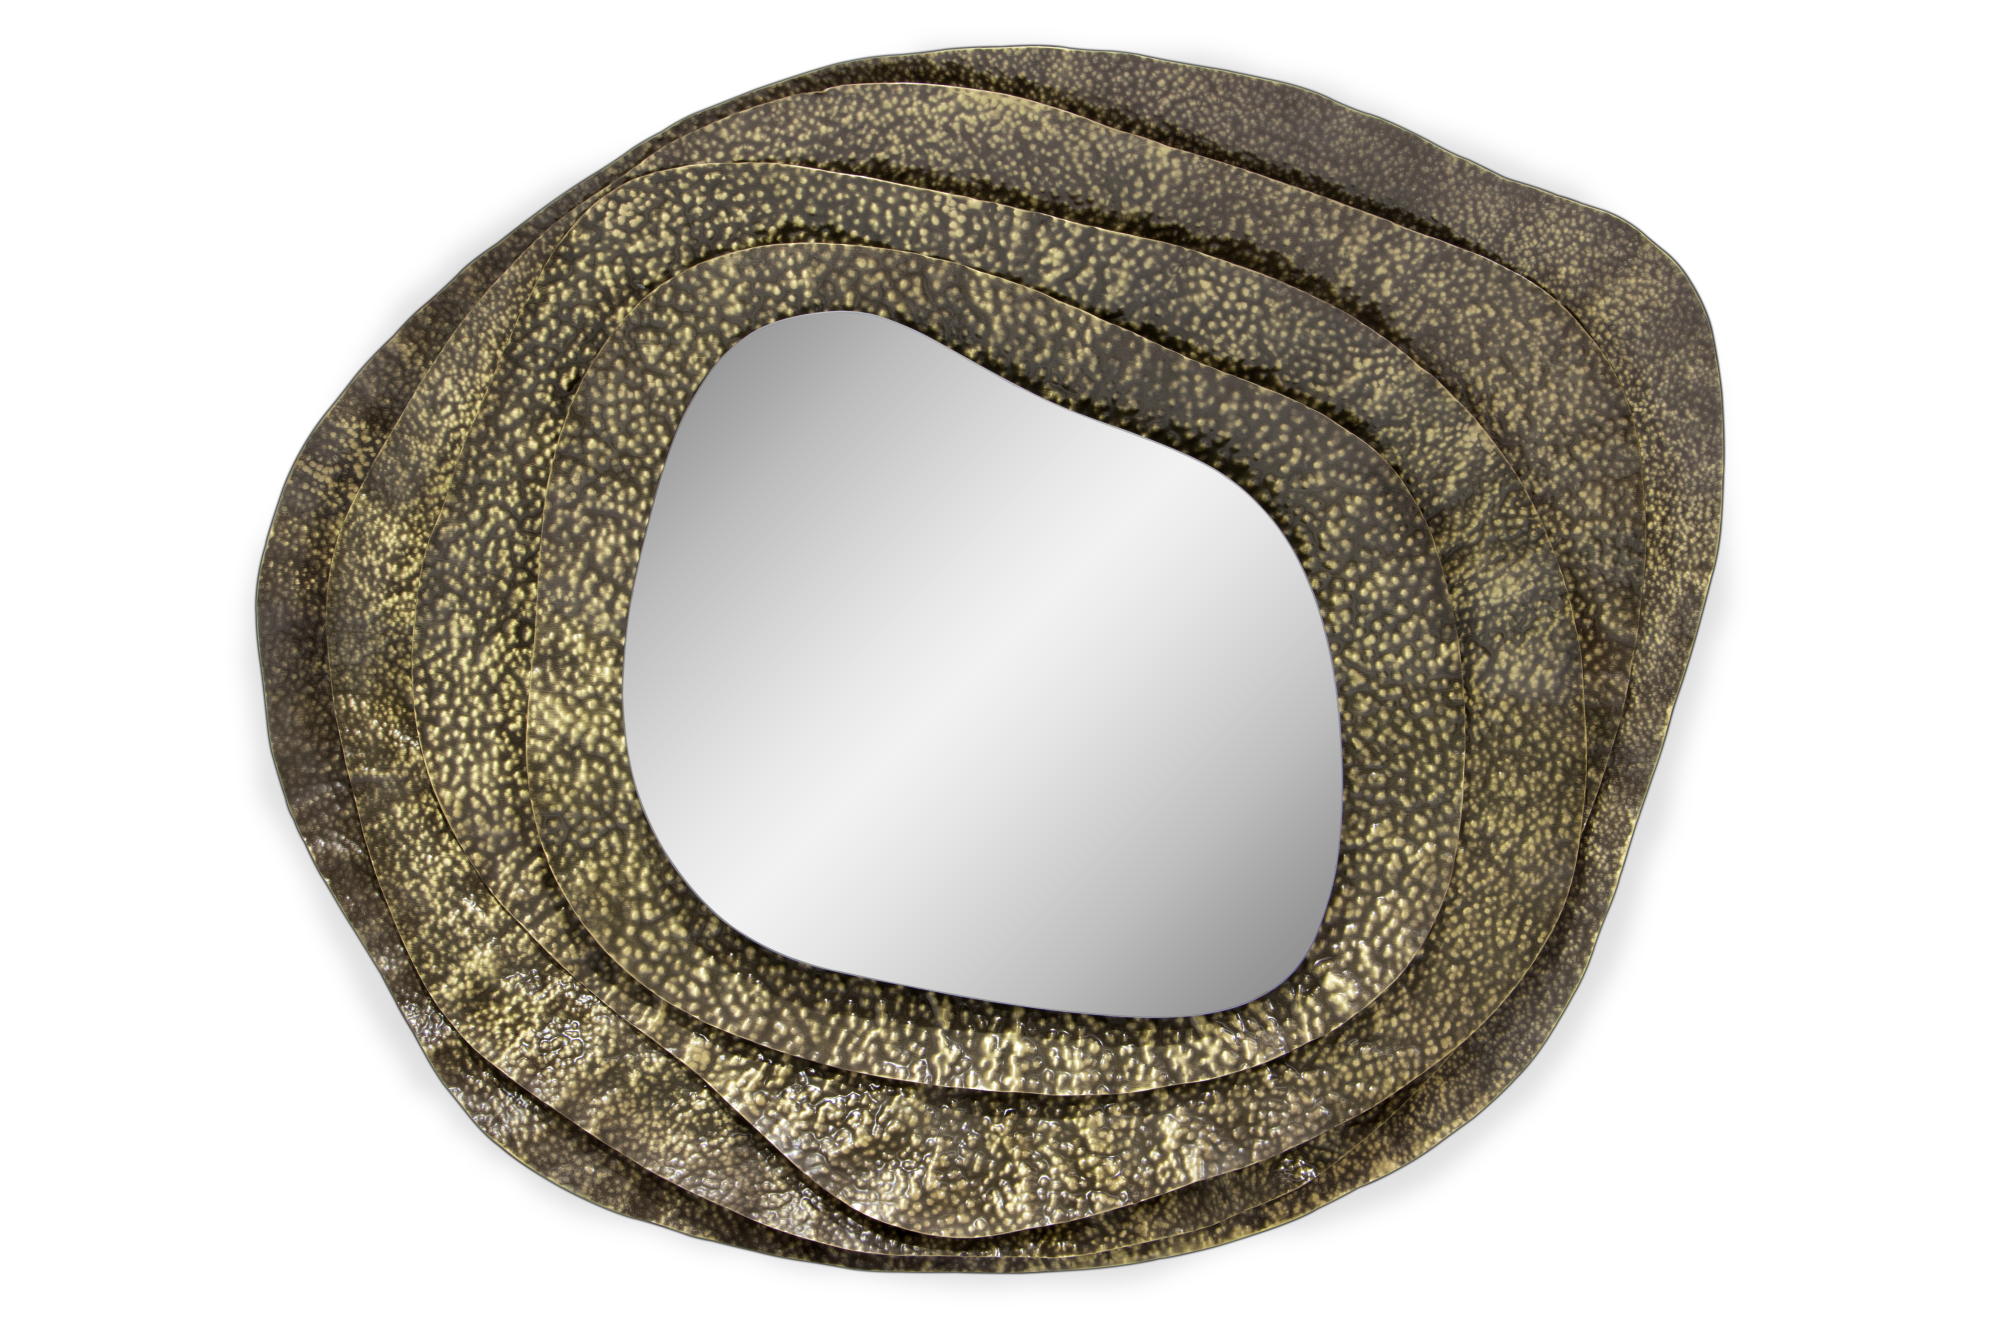 Round Mirrors: Find Out Extraordinary Pieces to Highlight your House round mirrorsRound Mirrors: Find Out Extraordinary Pieces to Highlight your Housekumi mirror II 1 HR 1